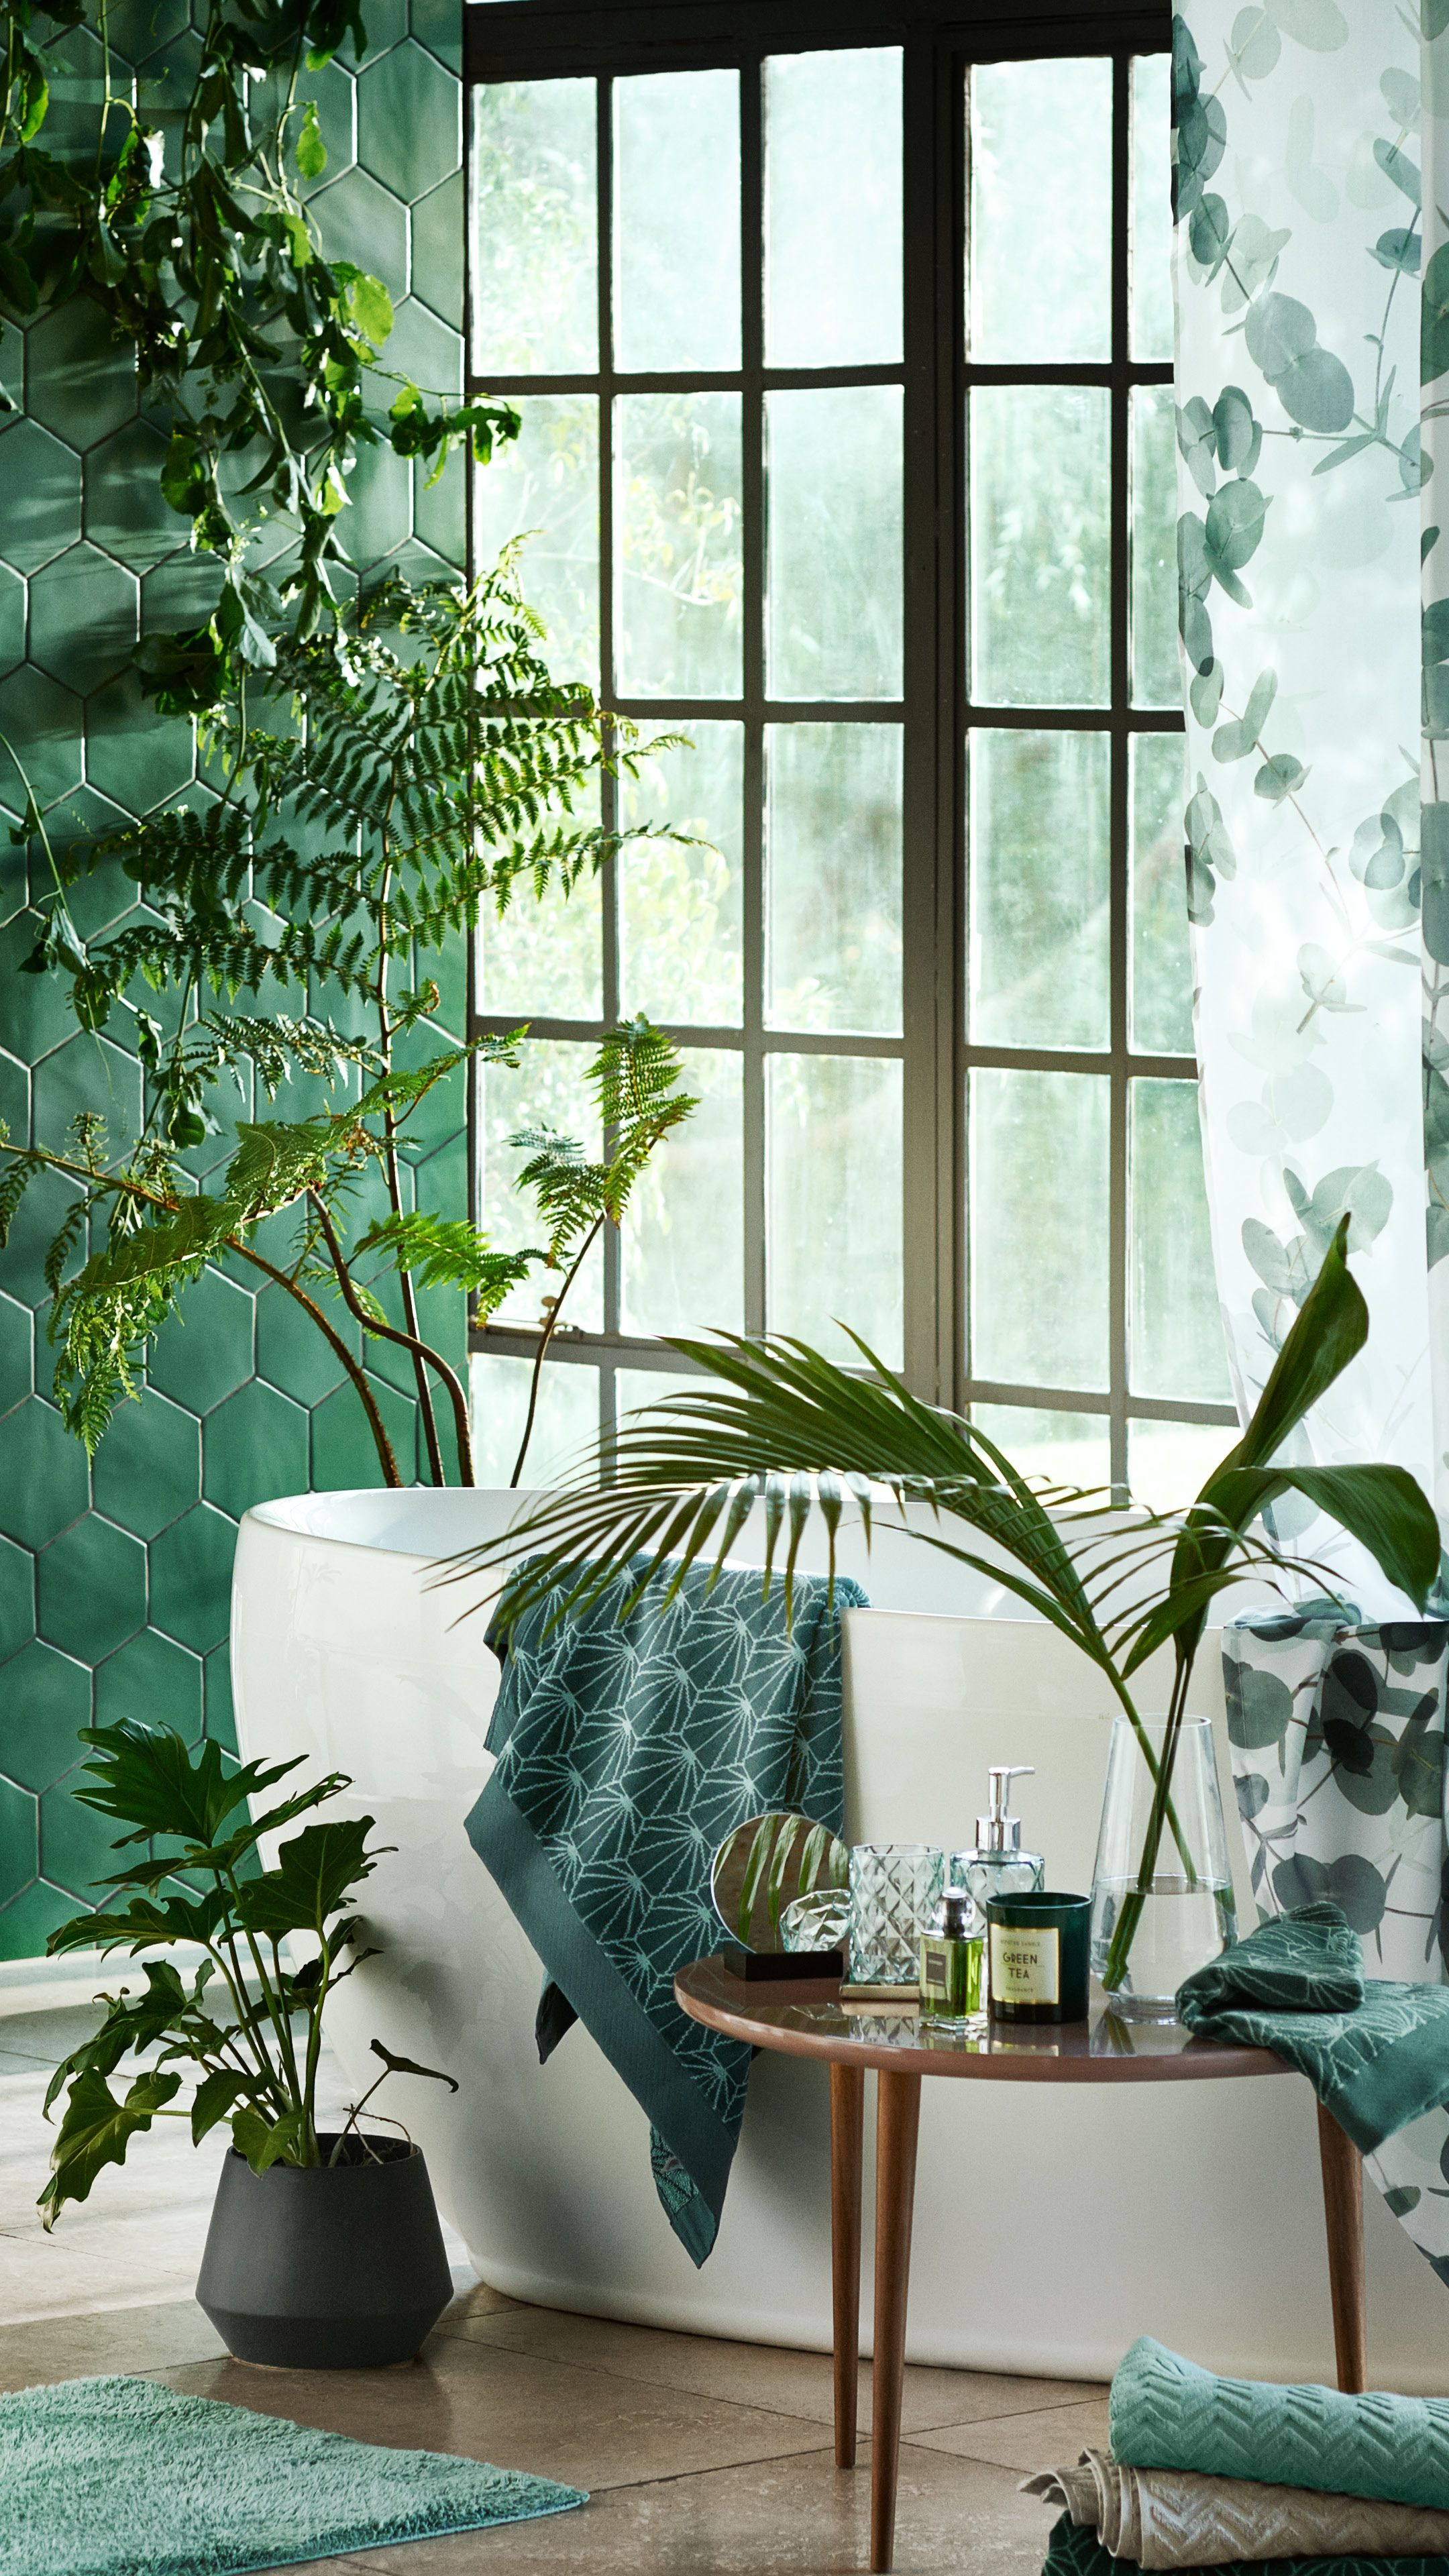 Hm Home Salle De Bain ~ liven up any room with new home accessories and green tones h m